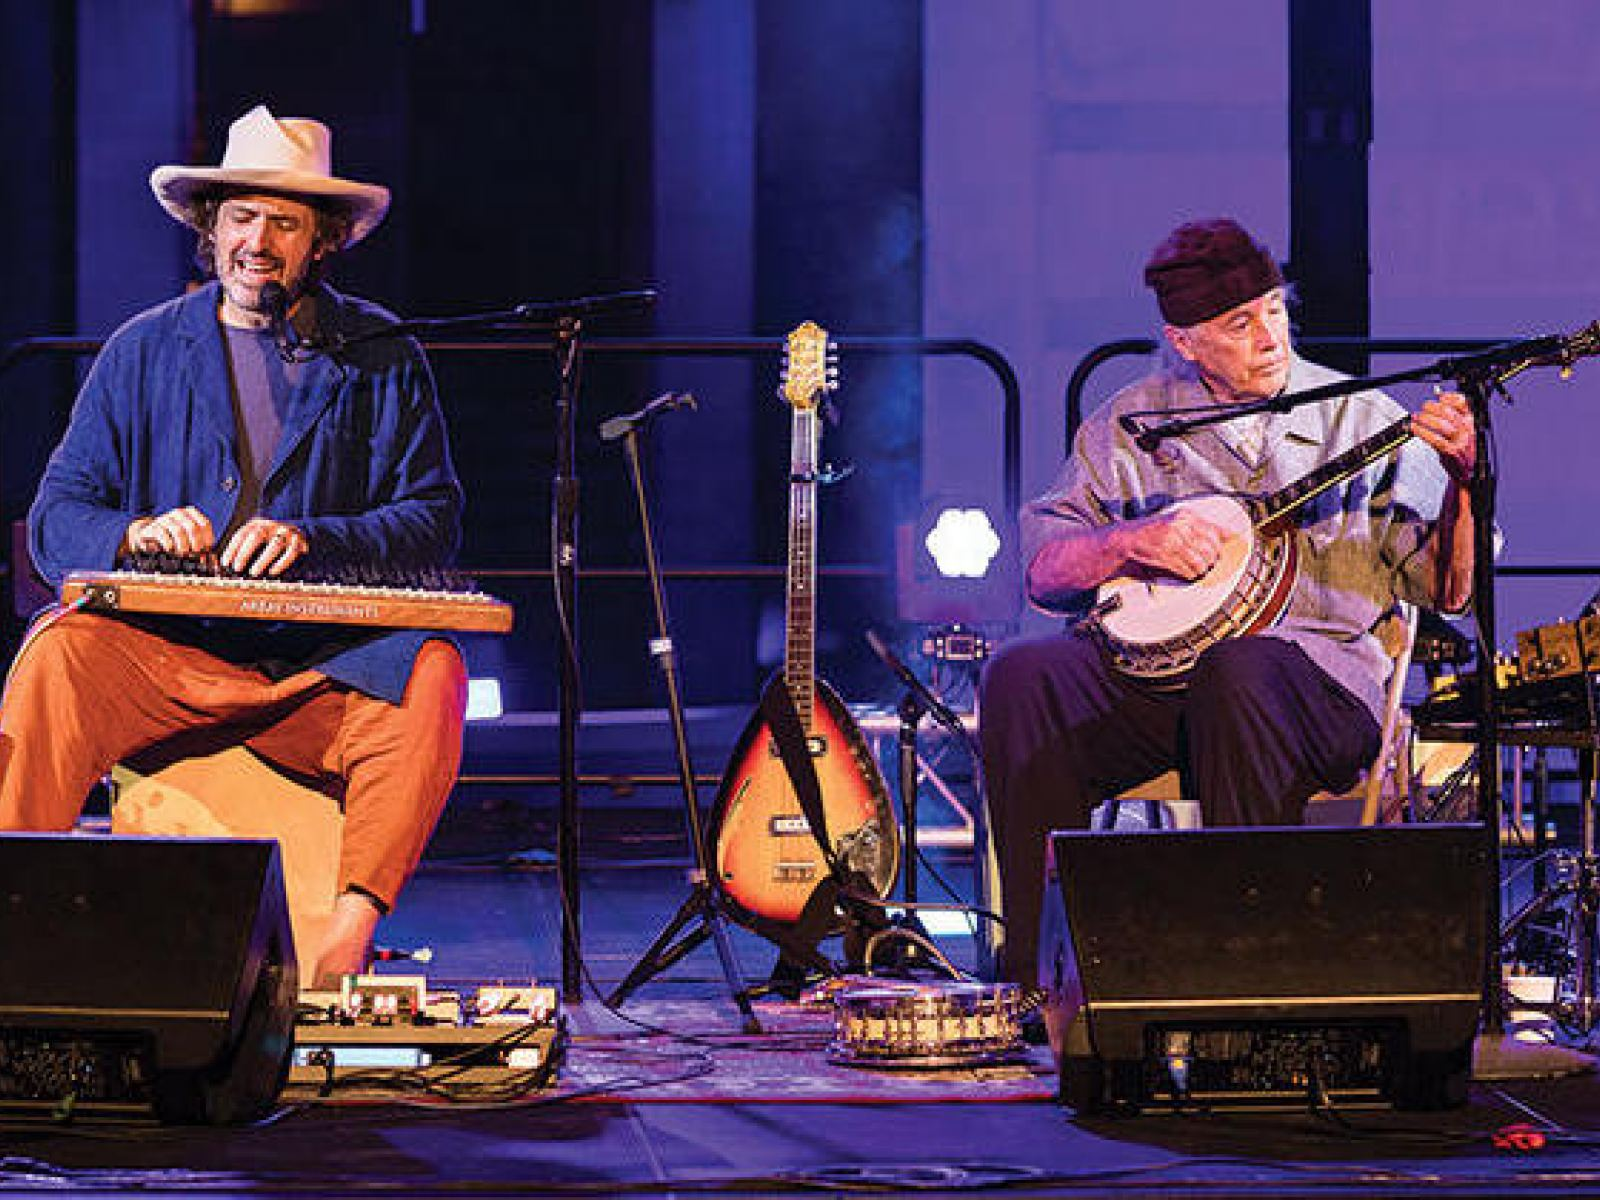 Joachim Cooder with his father Ry Cooder, photo by Larry Sandez